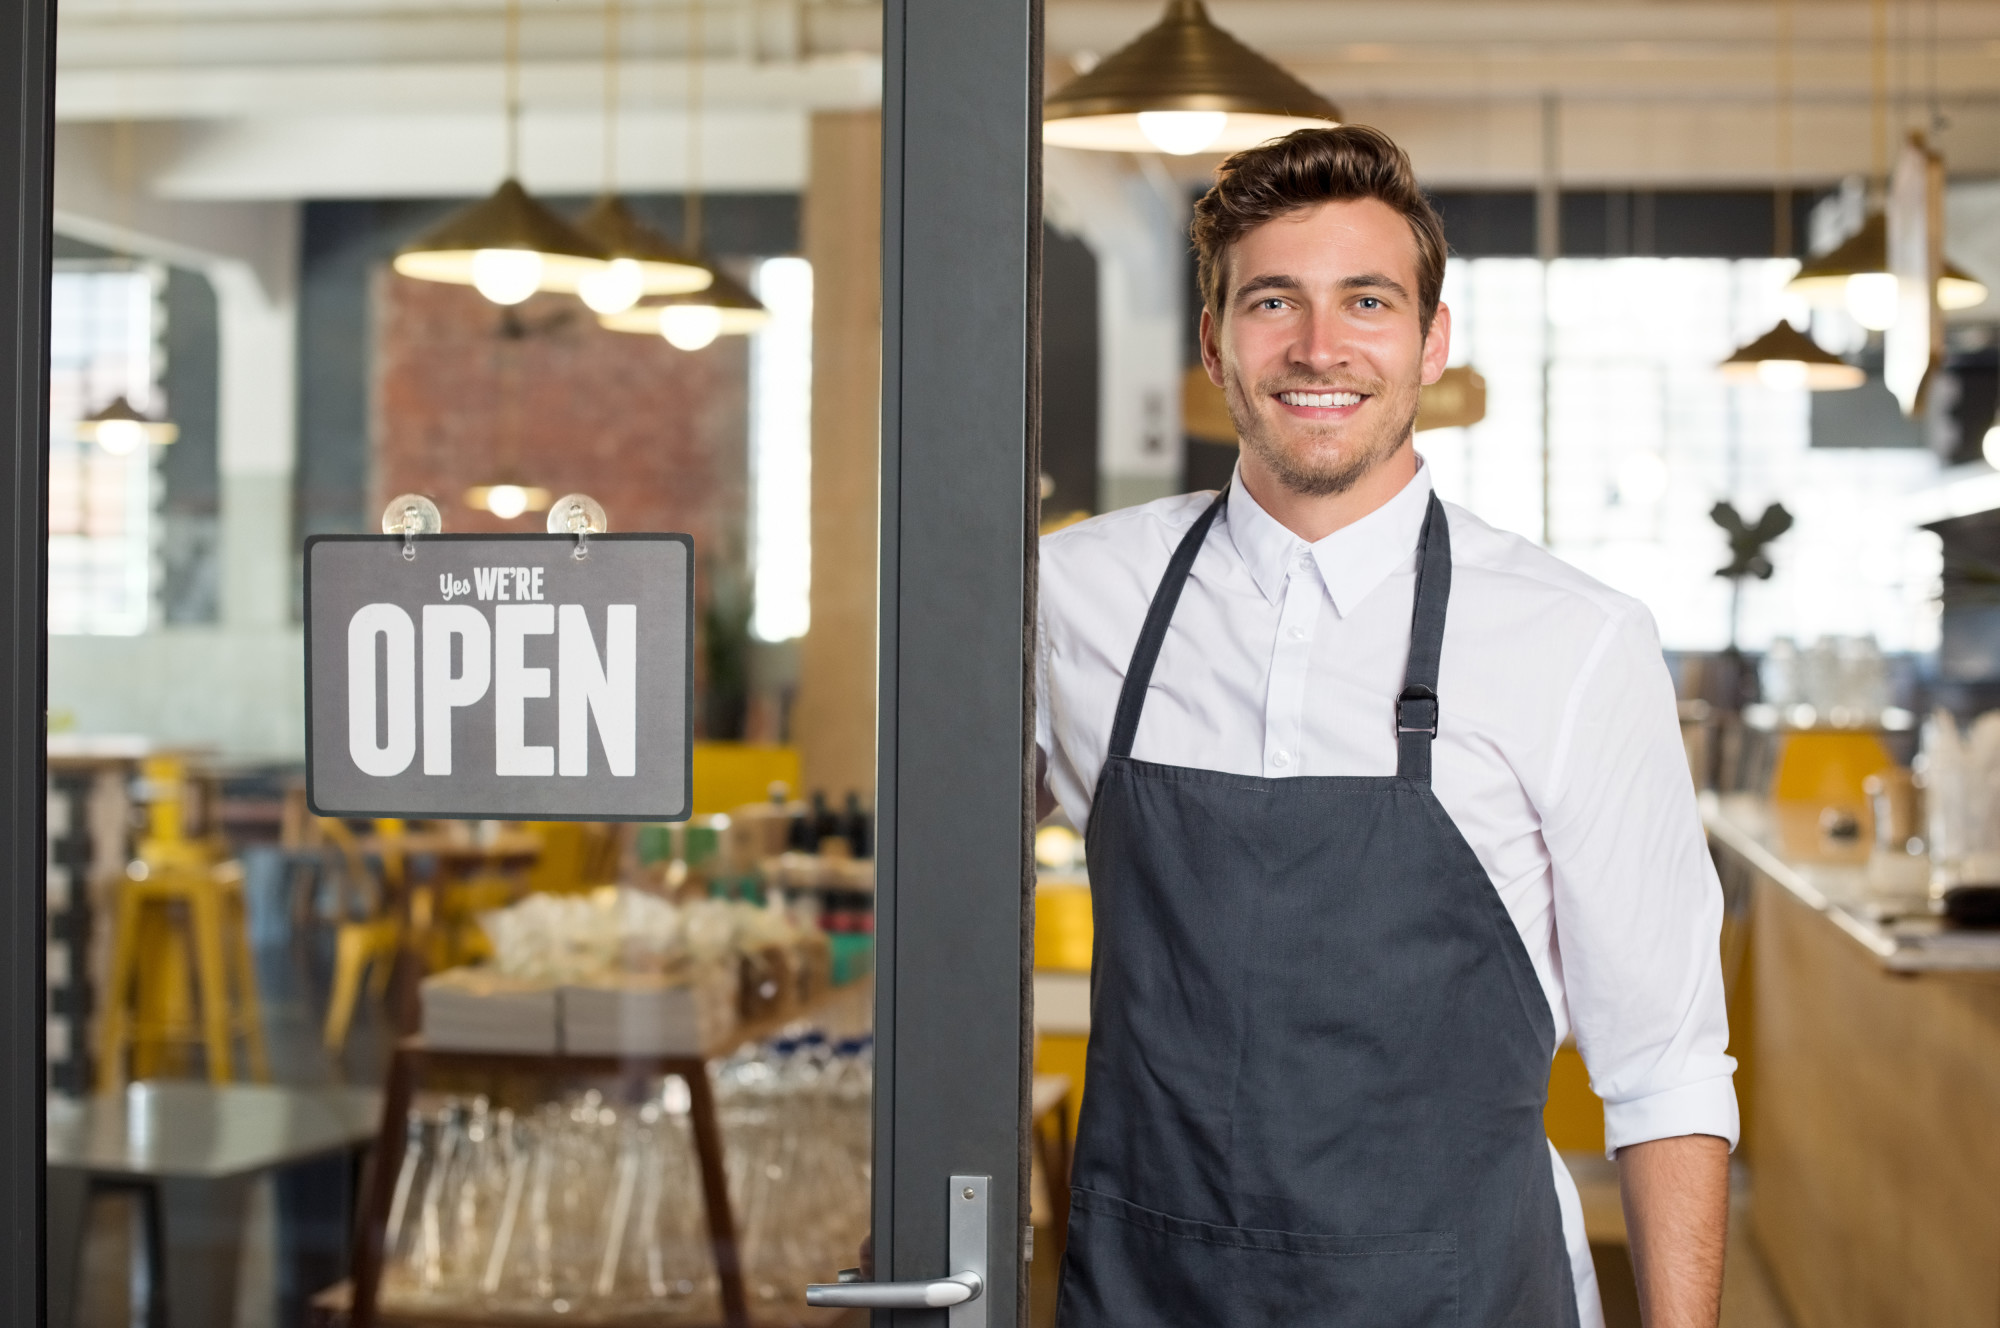 Food Safety Tips For Day To Day Restaurant Operation